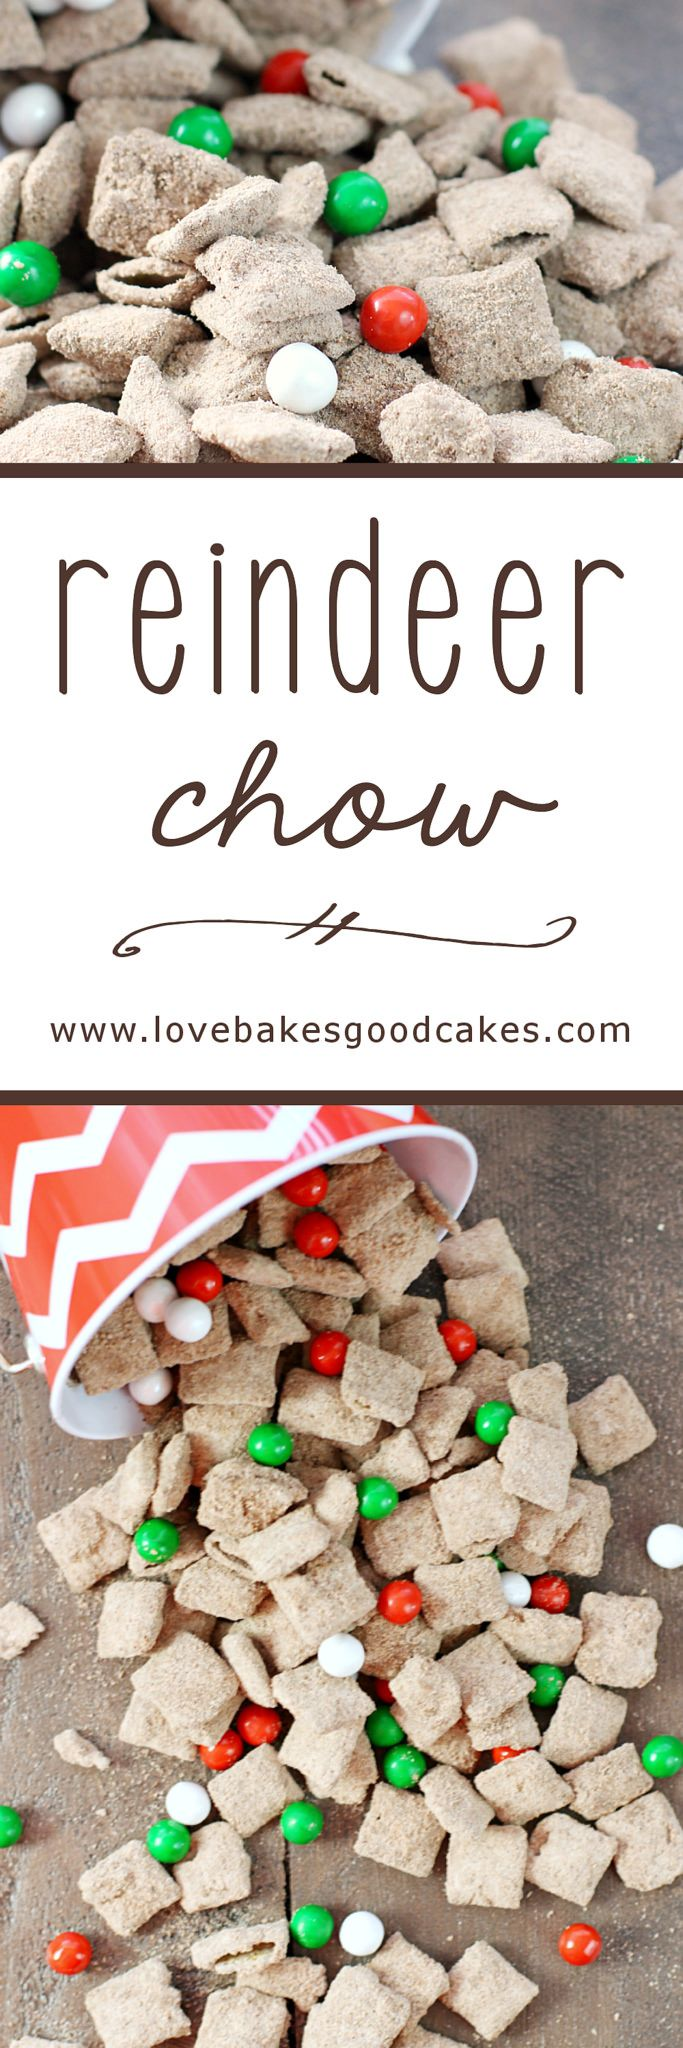 how to make reindeer chow